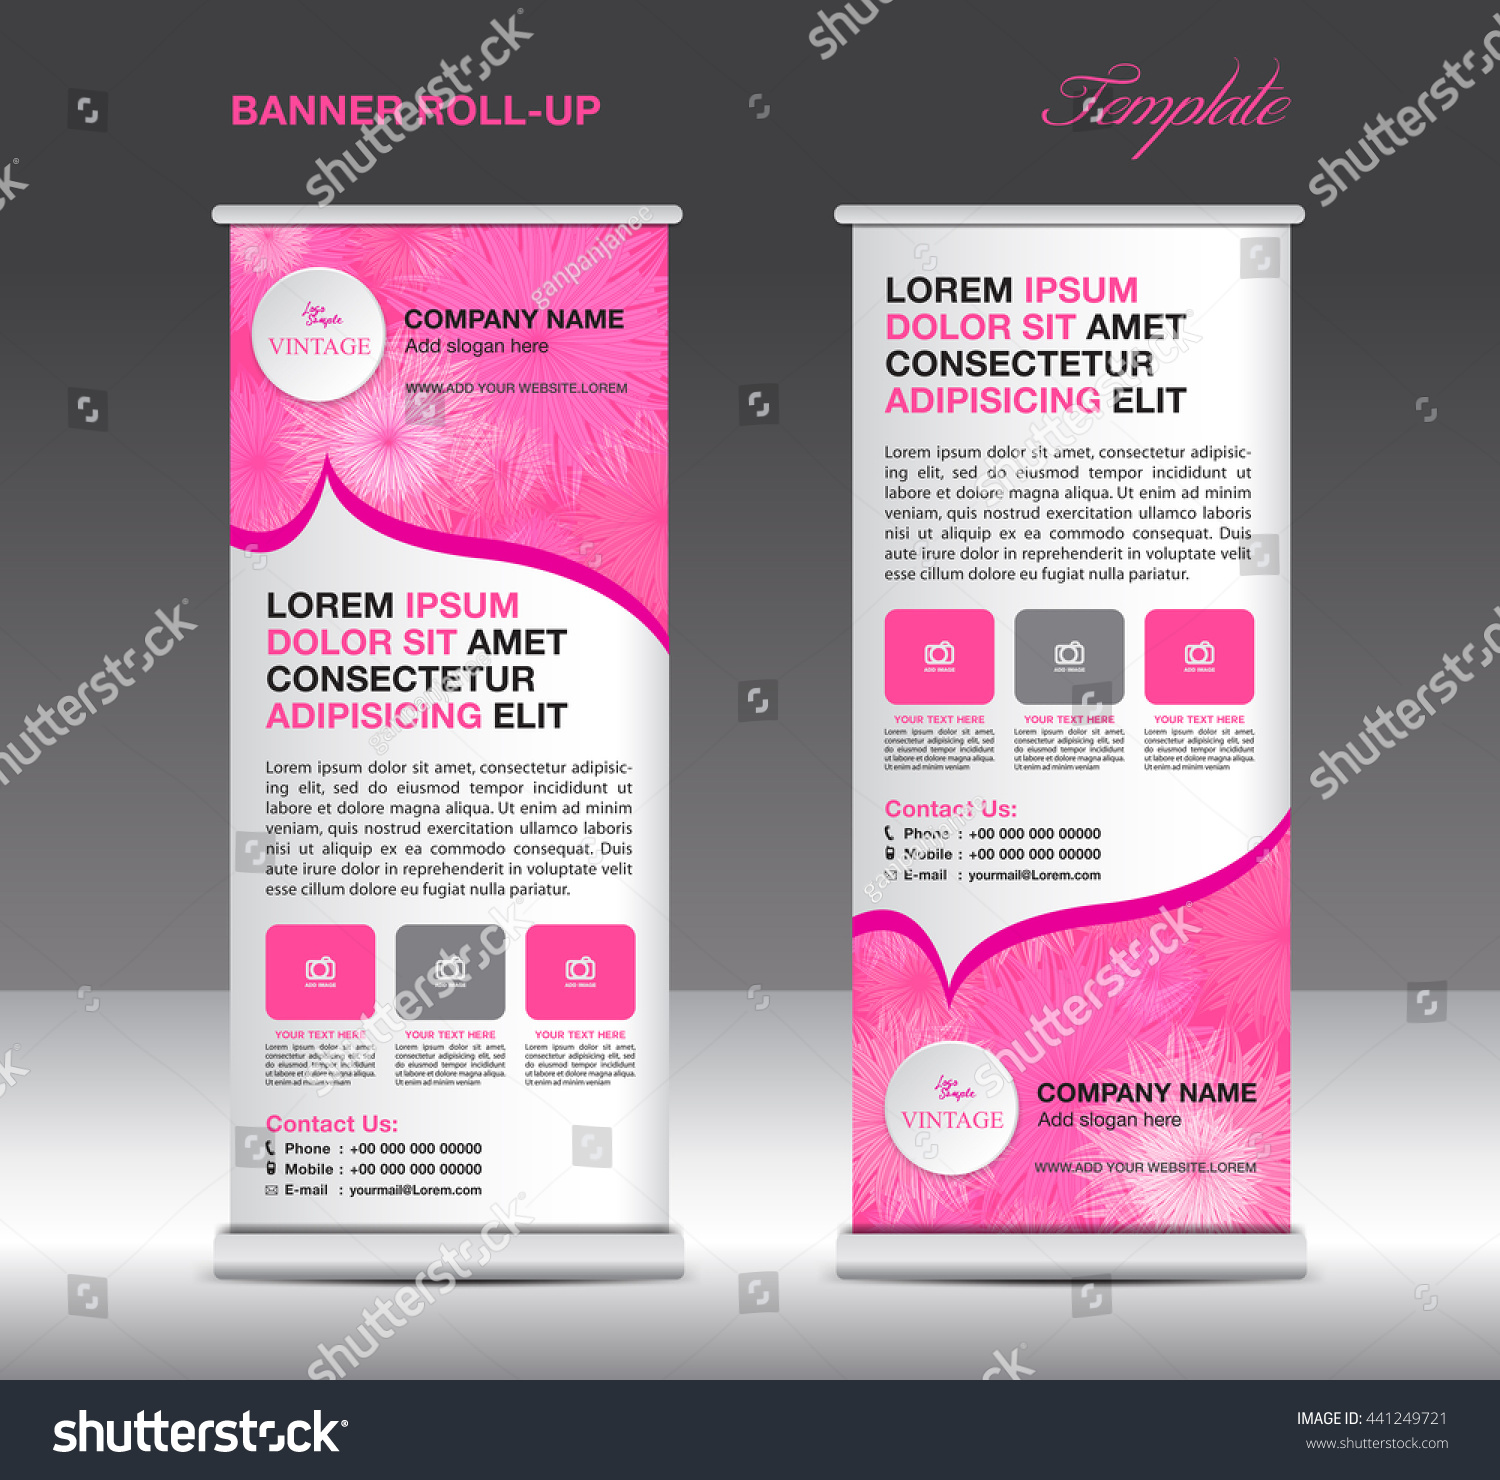 pink roll up banner stand template flower vintage flyer design for pink roll up banner stand template flower vintage flyer design for business advertisement display